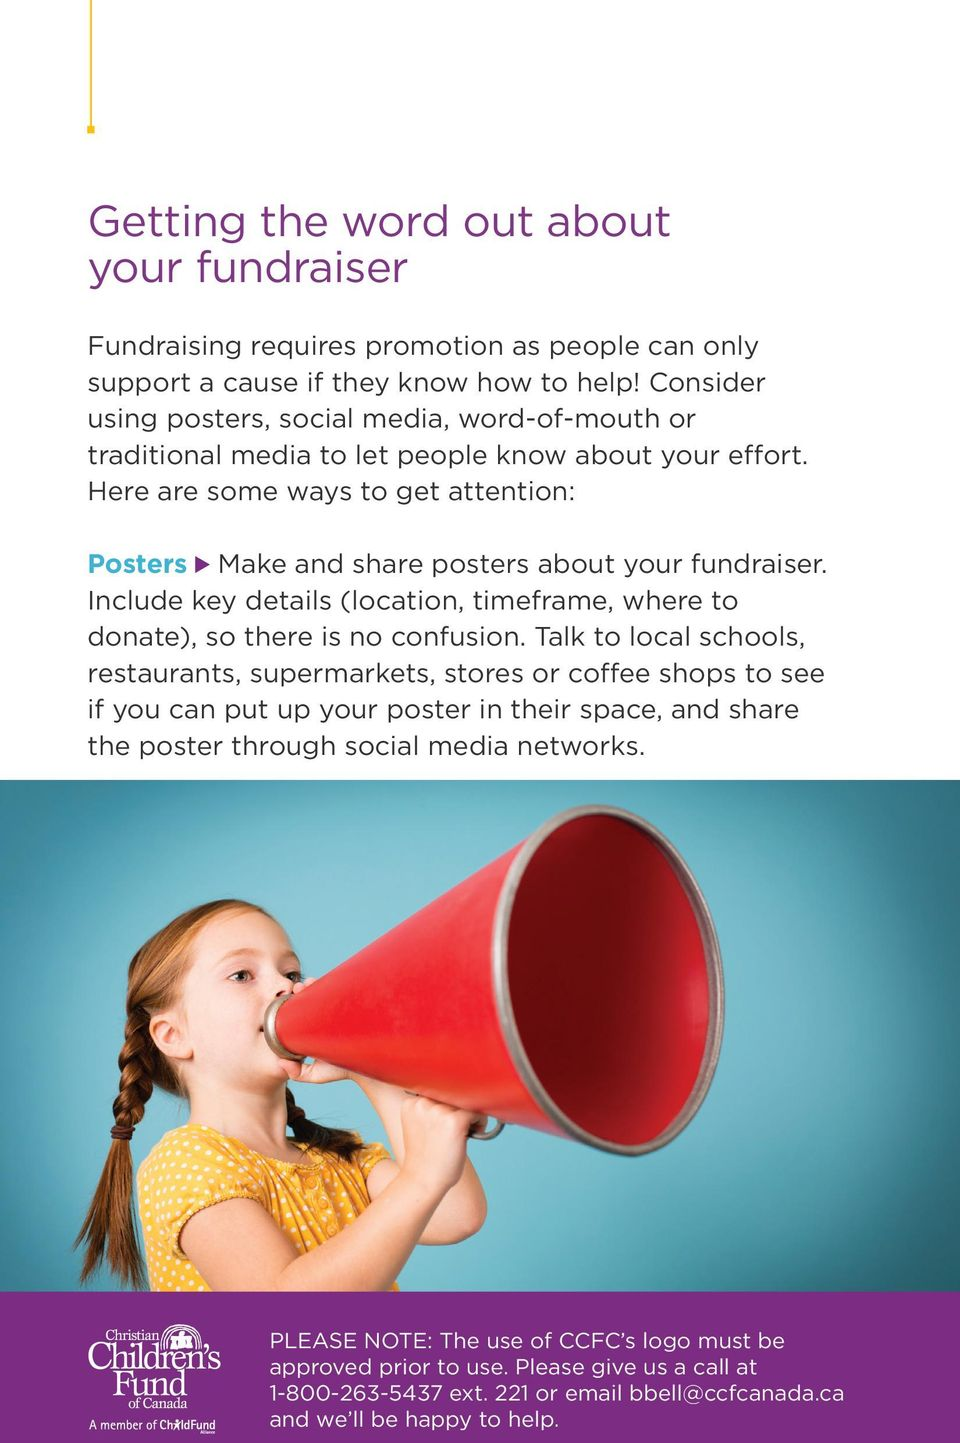 Here are some ways to get attention: Posters Make and share posters about your fundraiser. Include key details (location, timeframe, where to donate), so there is no confusion.